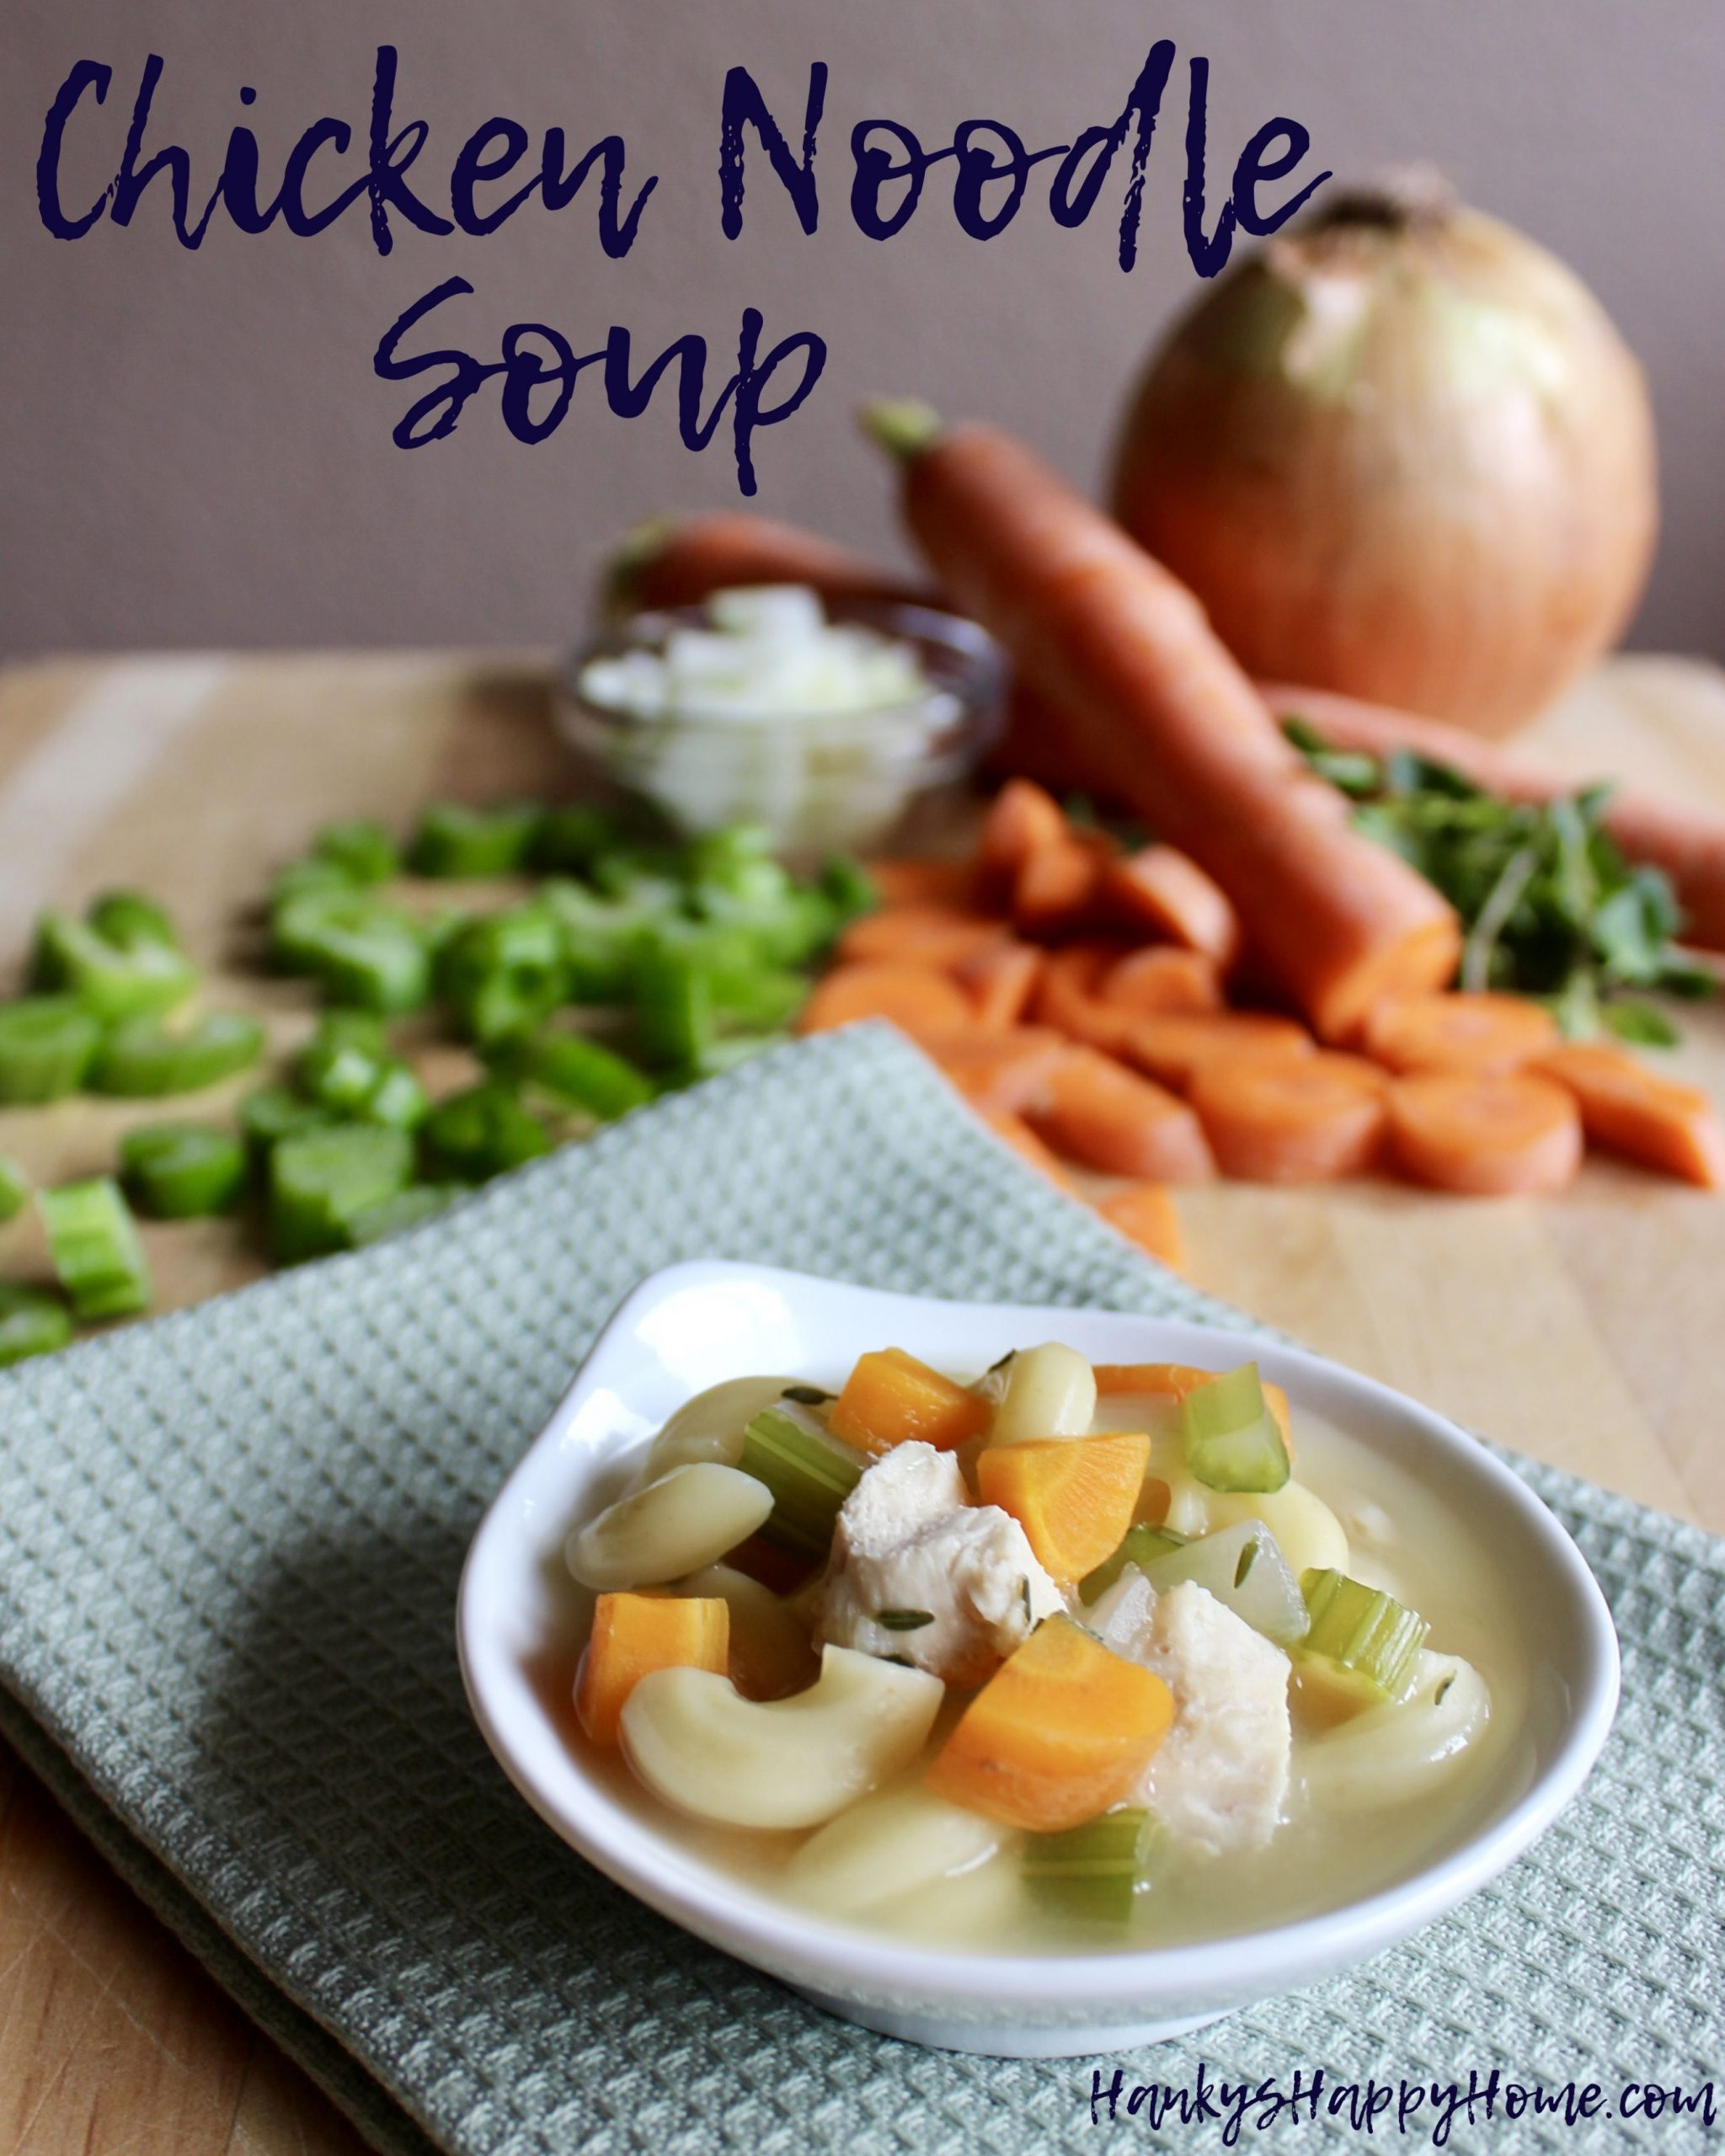 Chicken Noodle Soup Baby Food - Soup Recipes For Babies